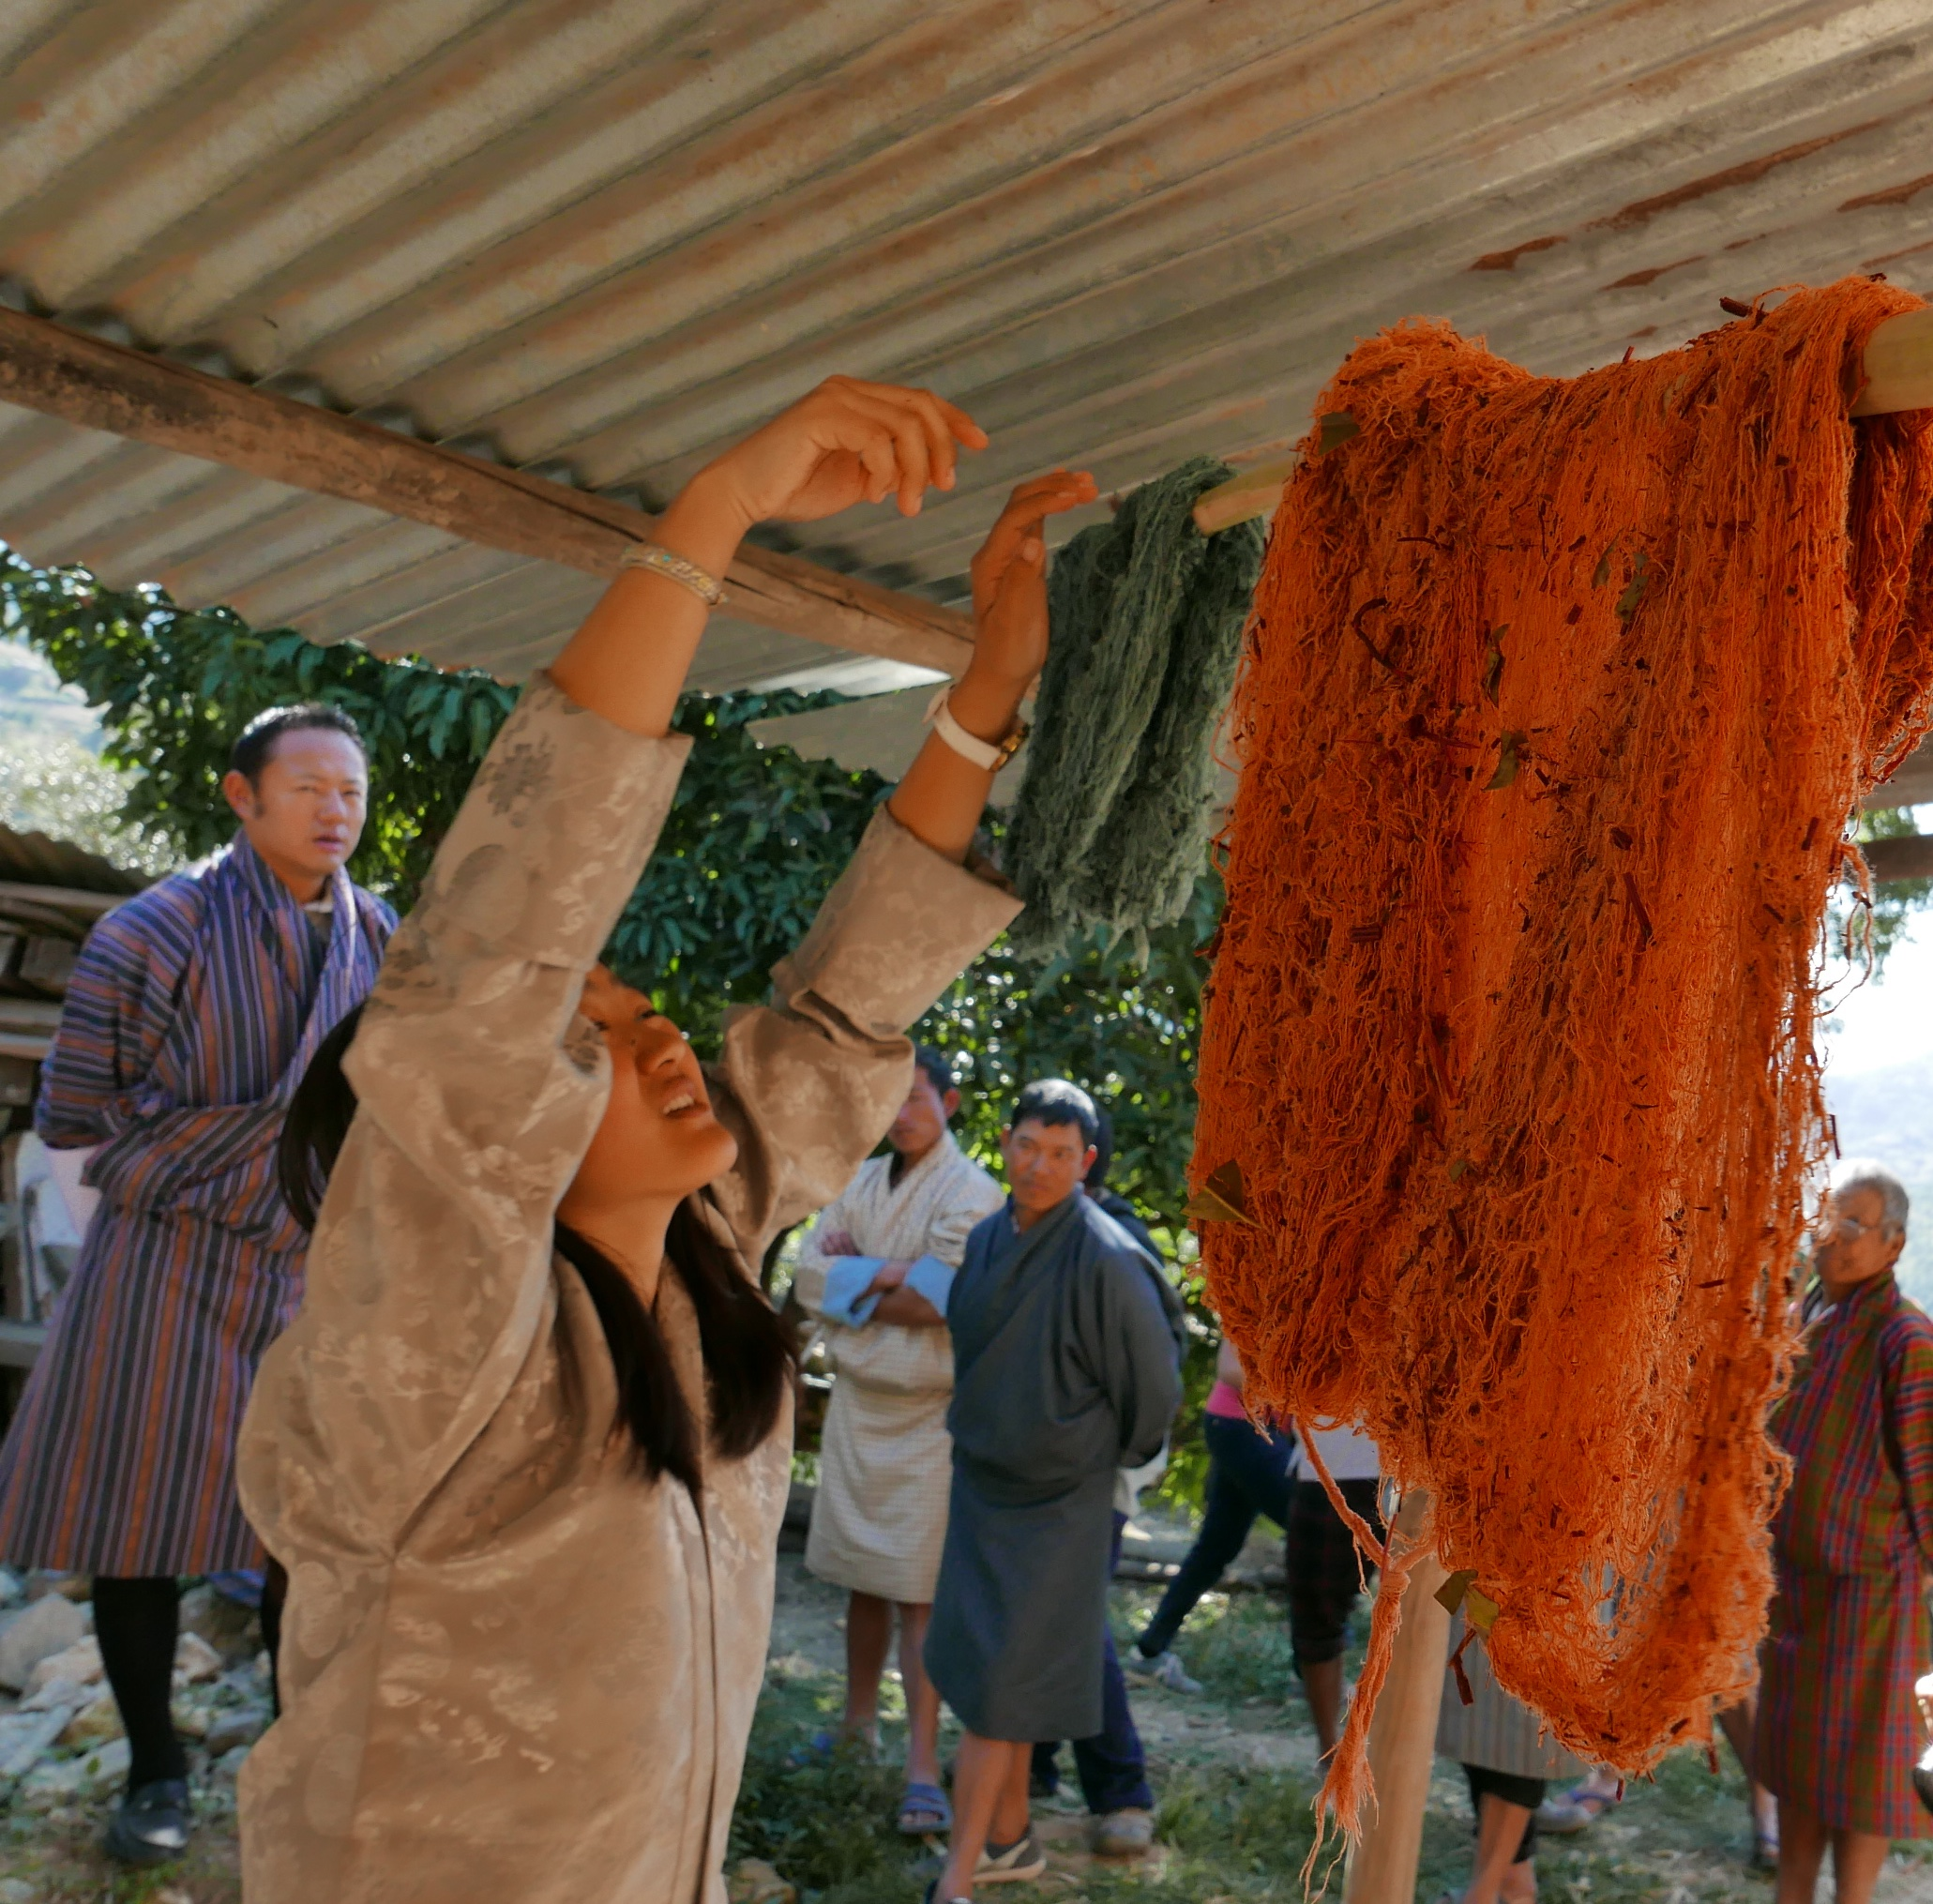 Organically dyed raw silk bales are hung up to dry - demonstration by a grassroots cooperative in Rhadi, Eastern Bhutan